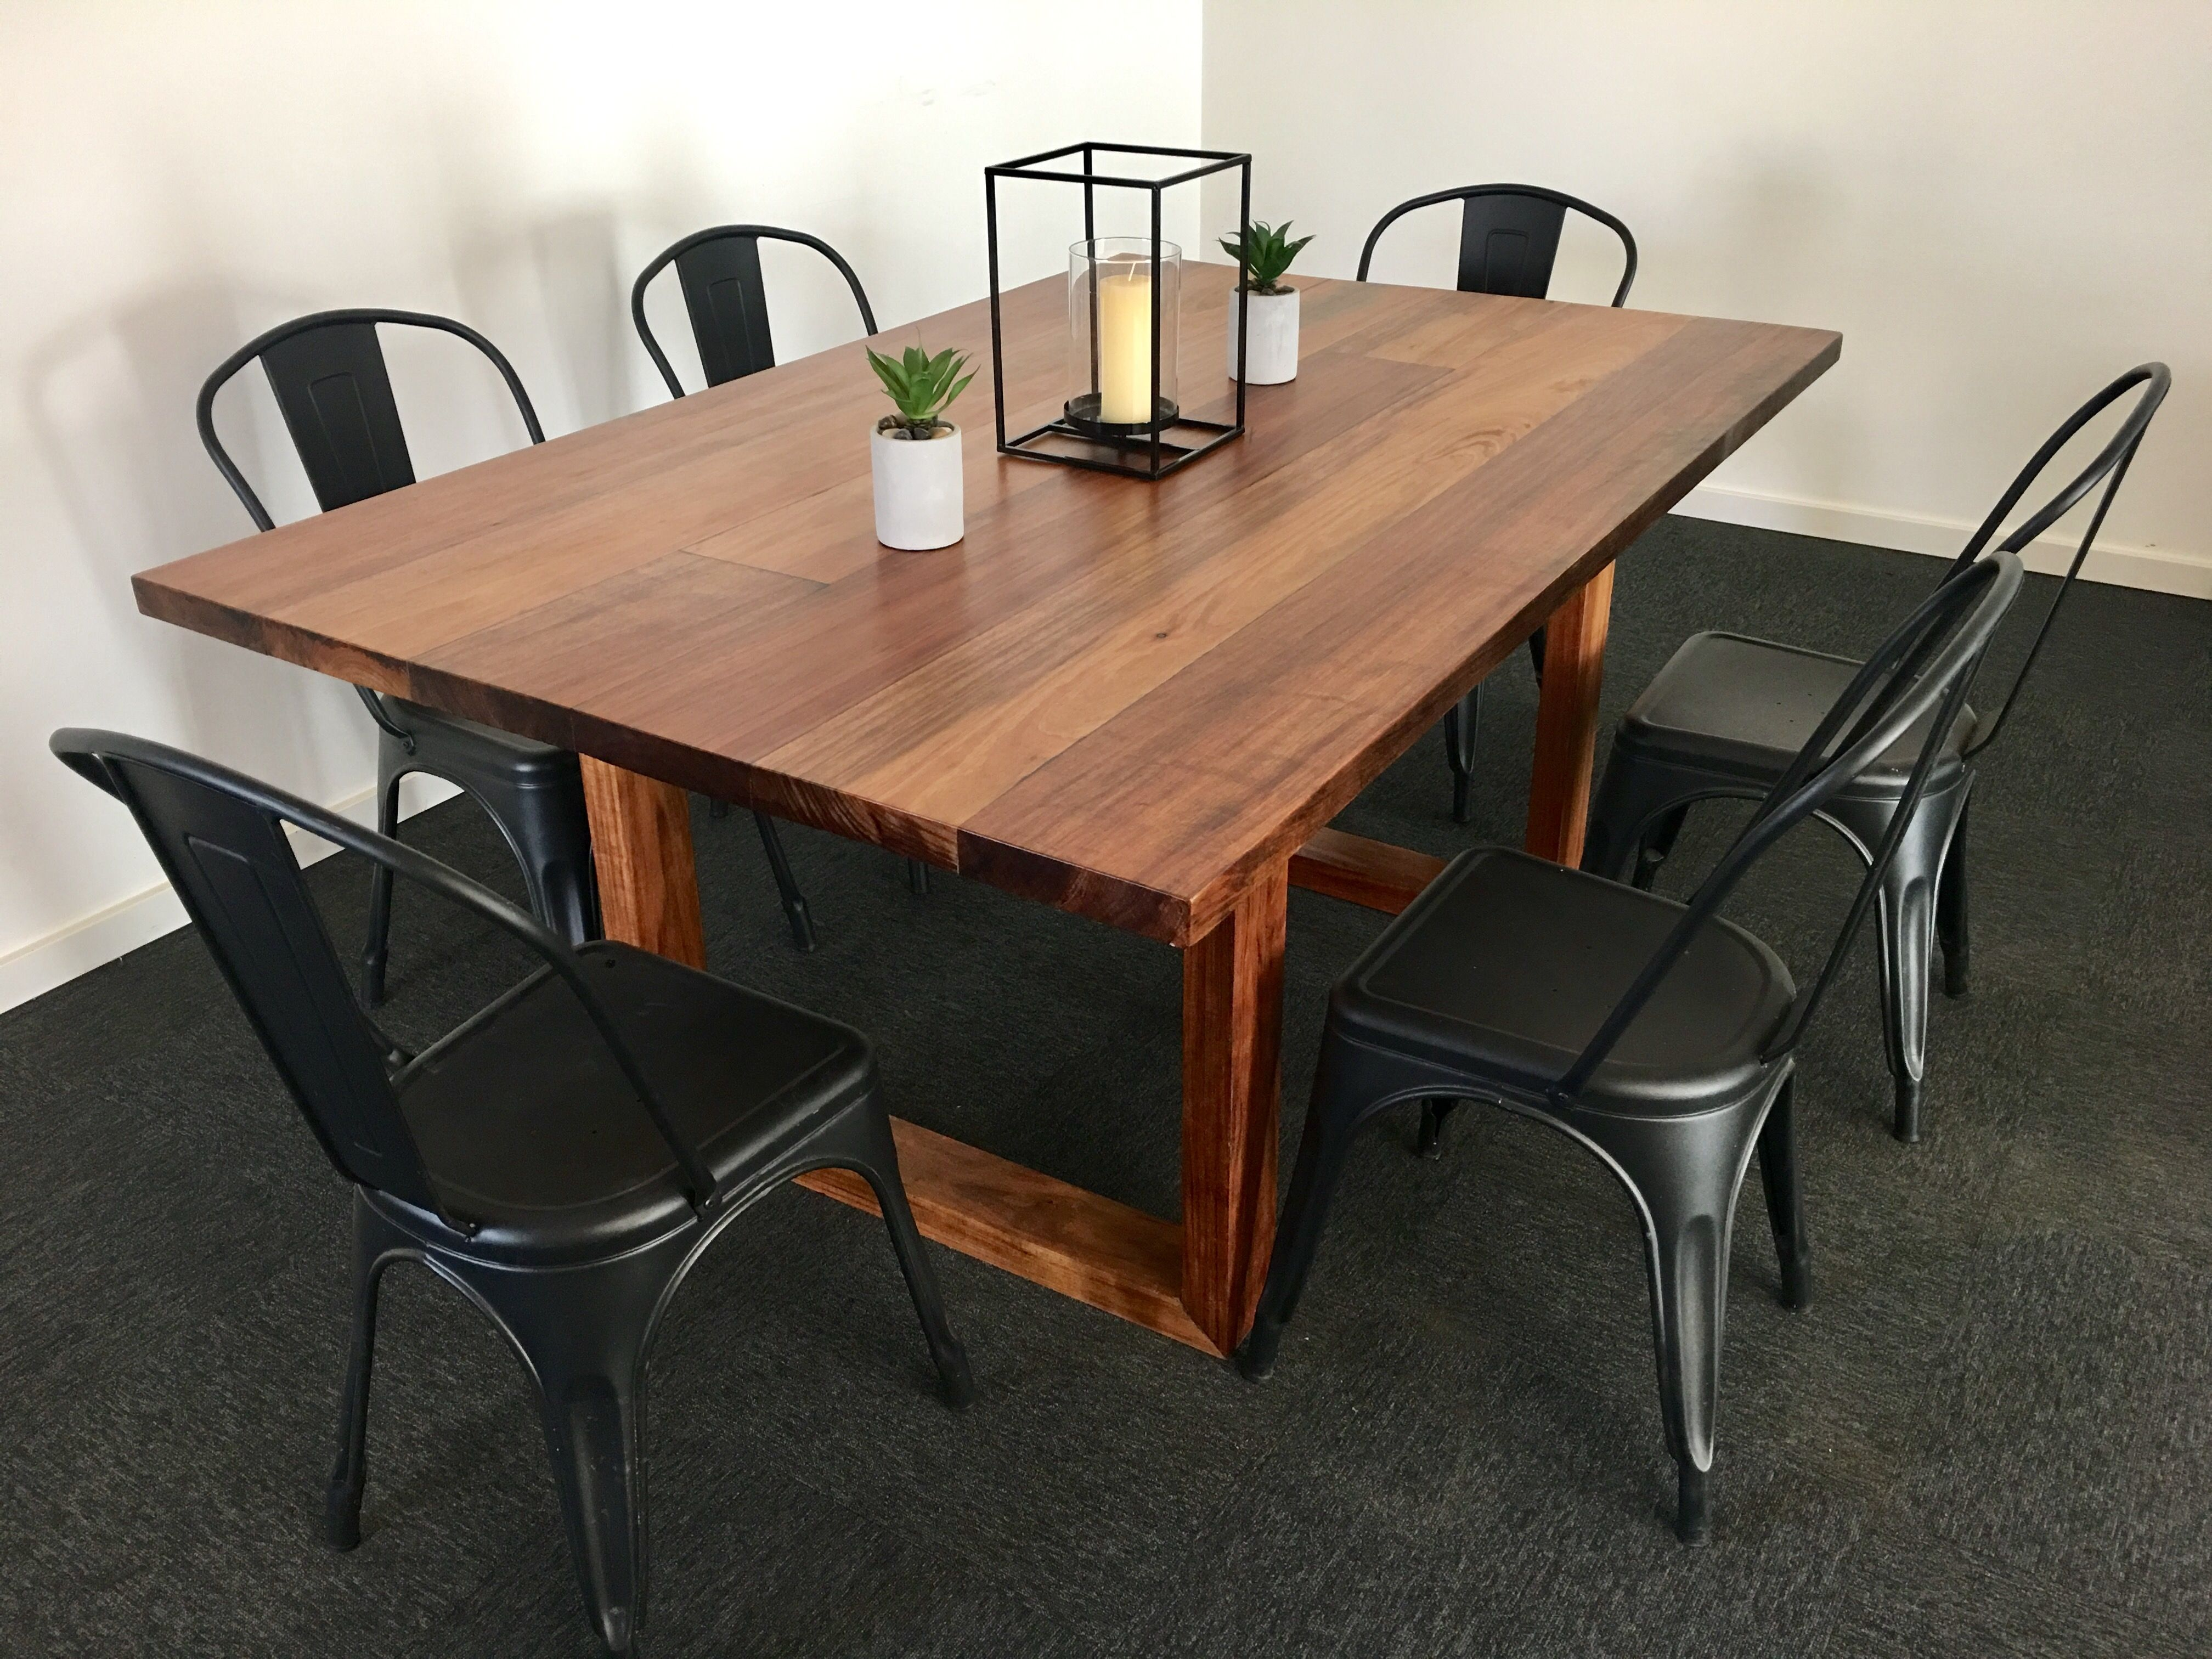 Dining Table With Box Wooden Legs